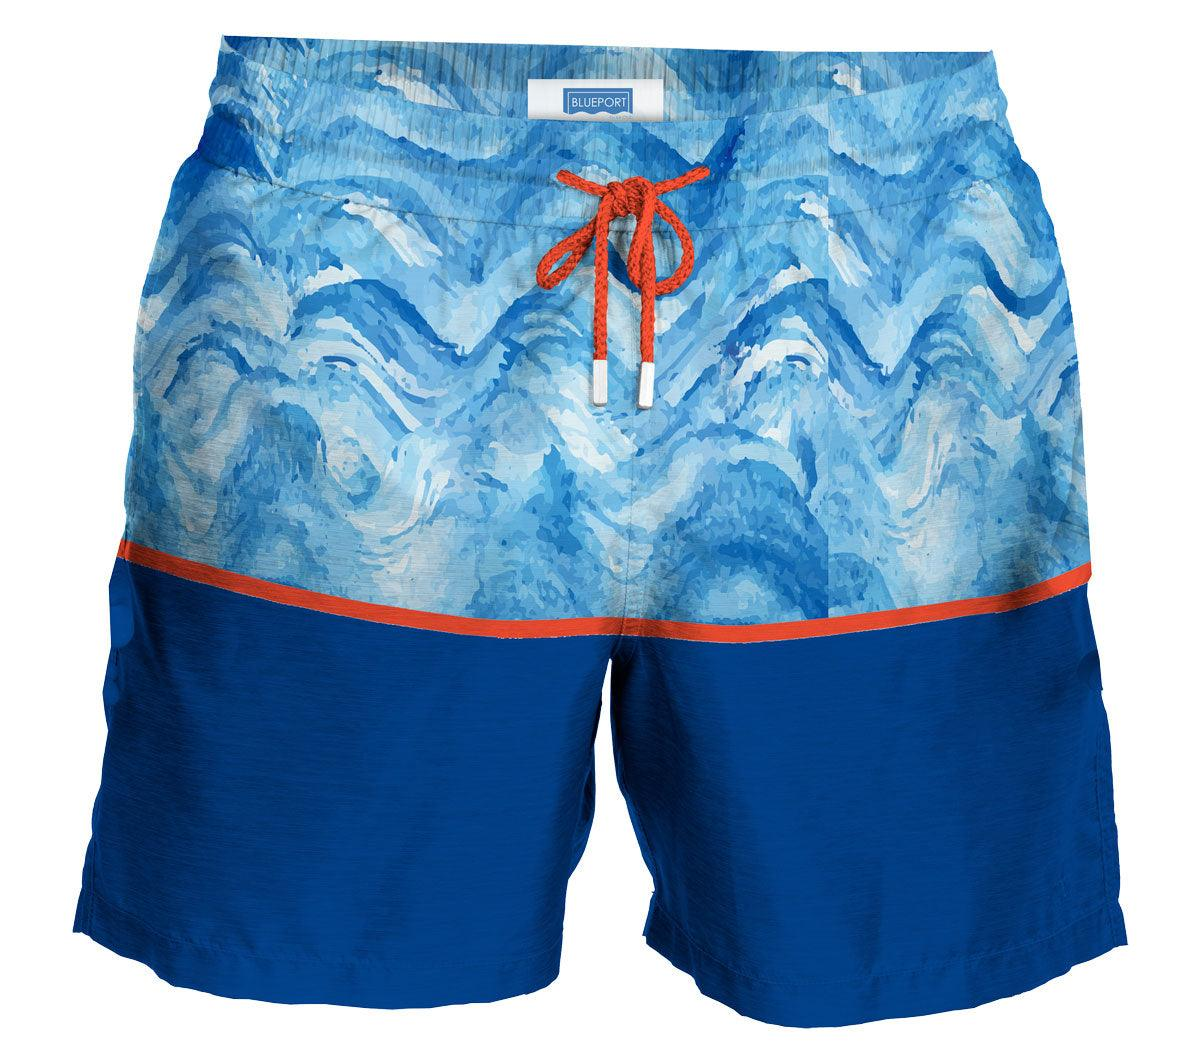 Men's Swim Trunks Horizon